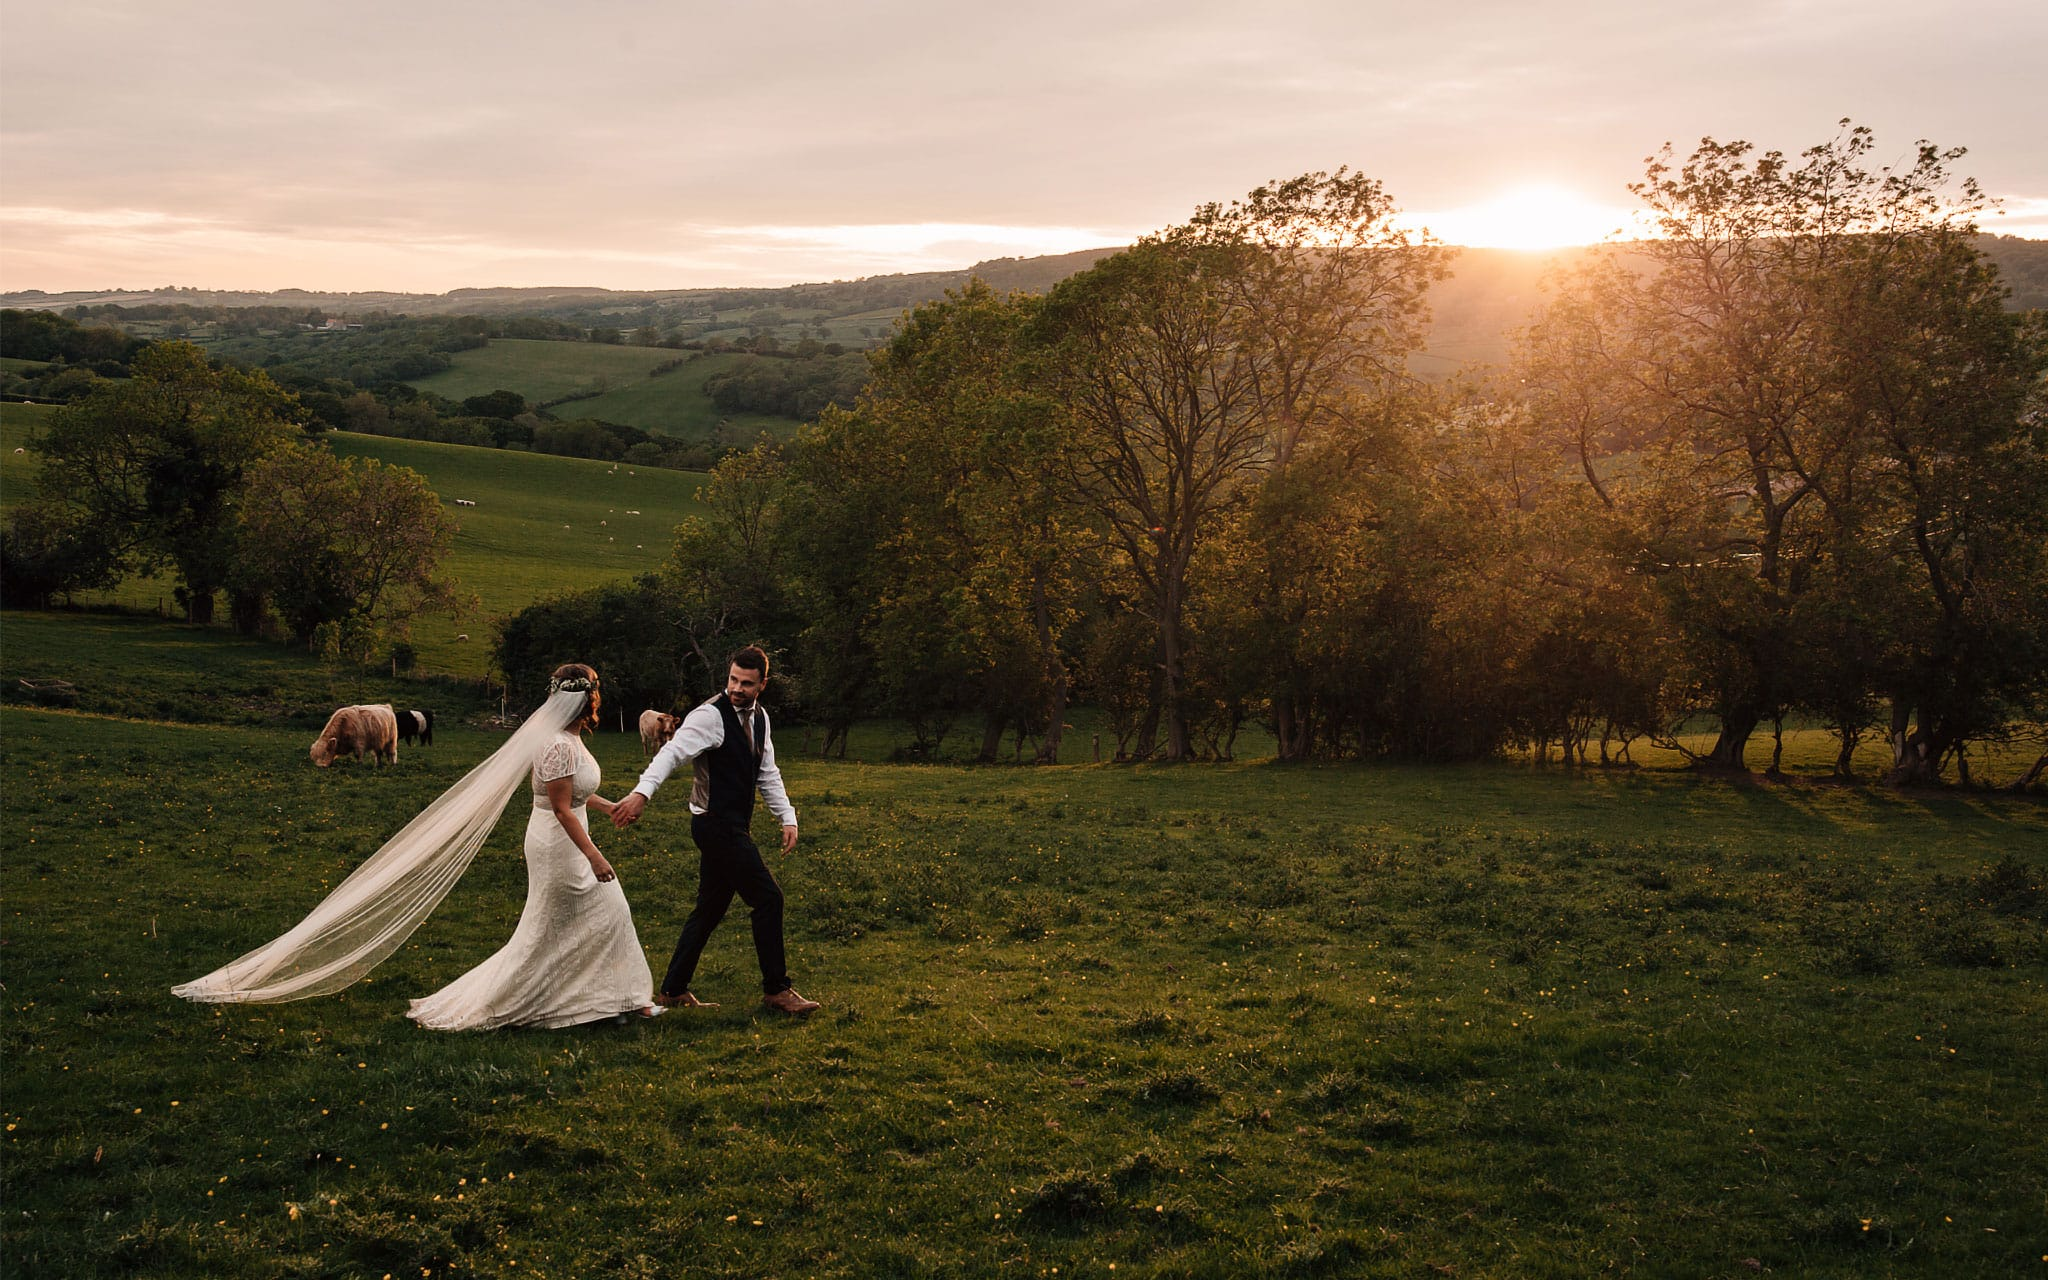 adventurous wedding photography Yorkshire documentary header image